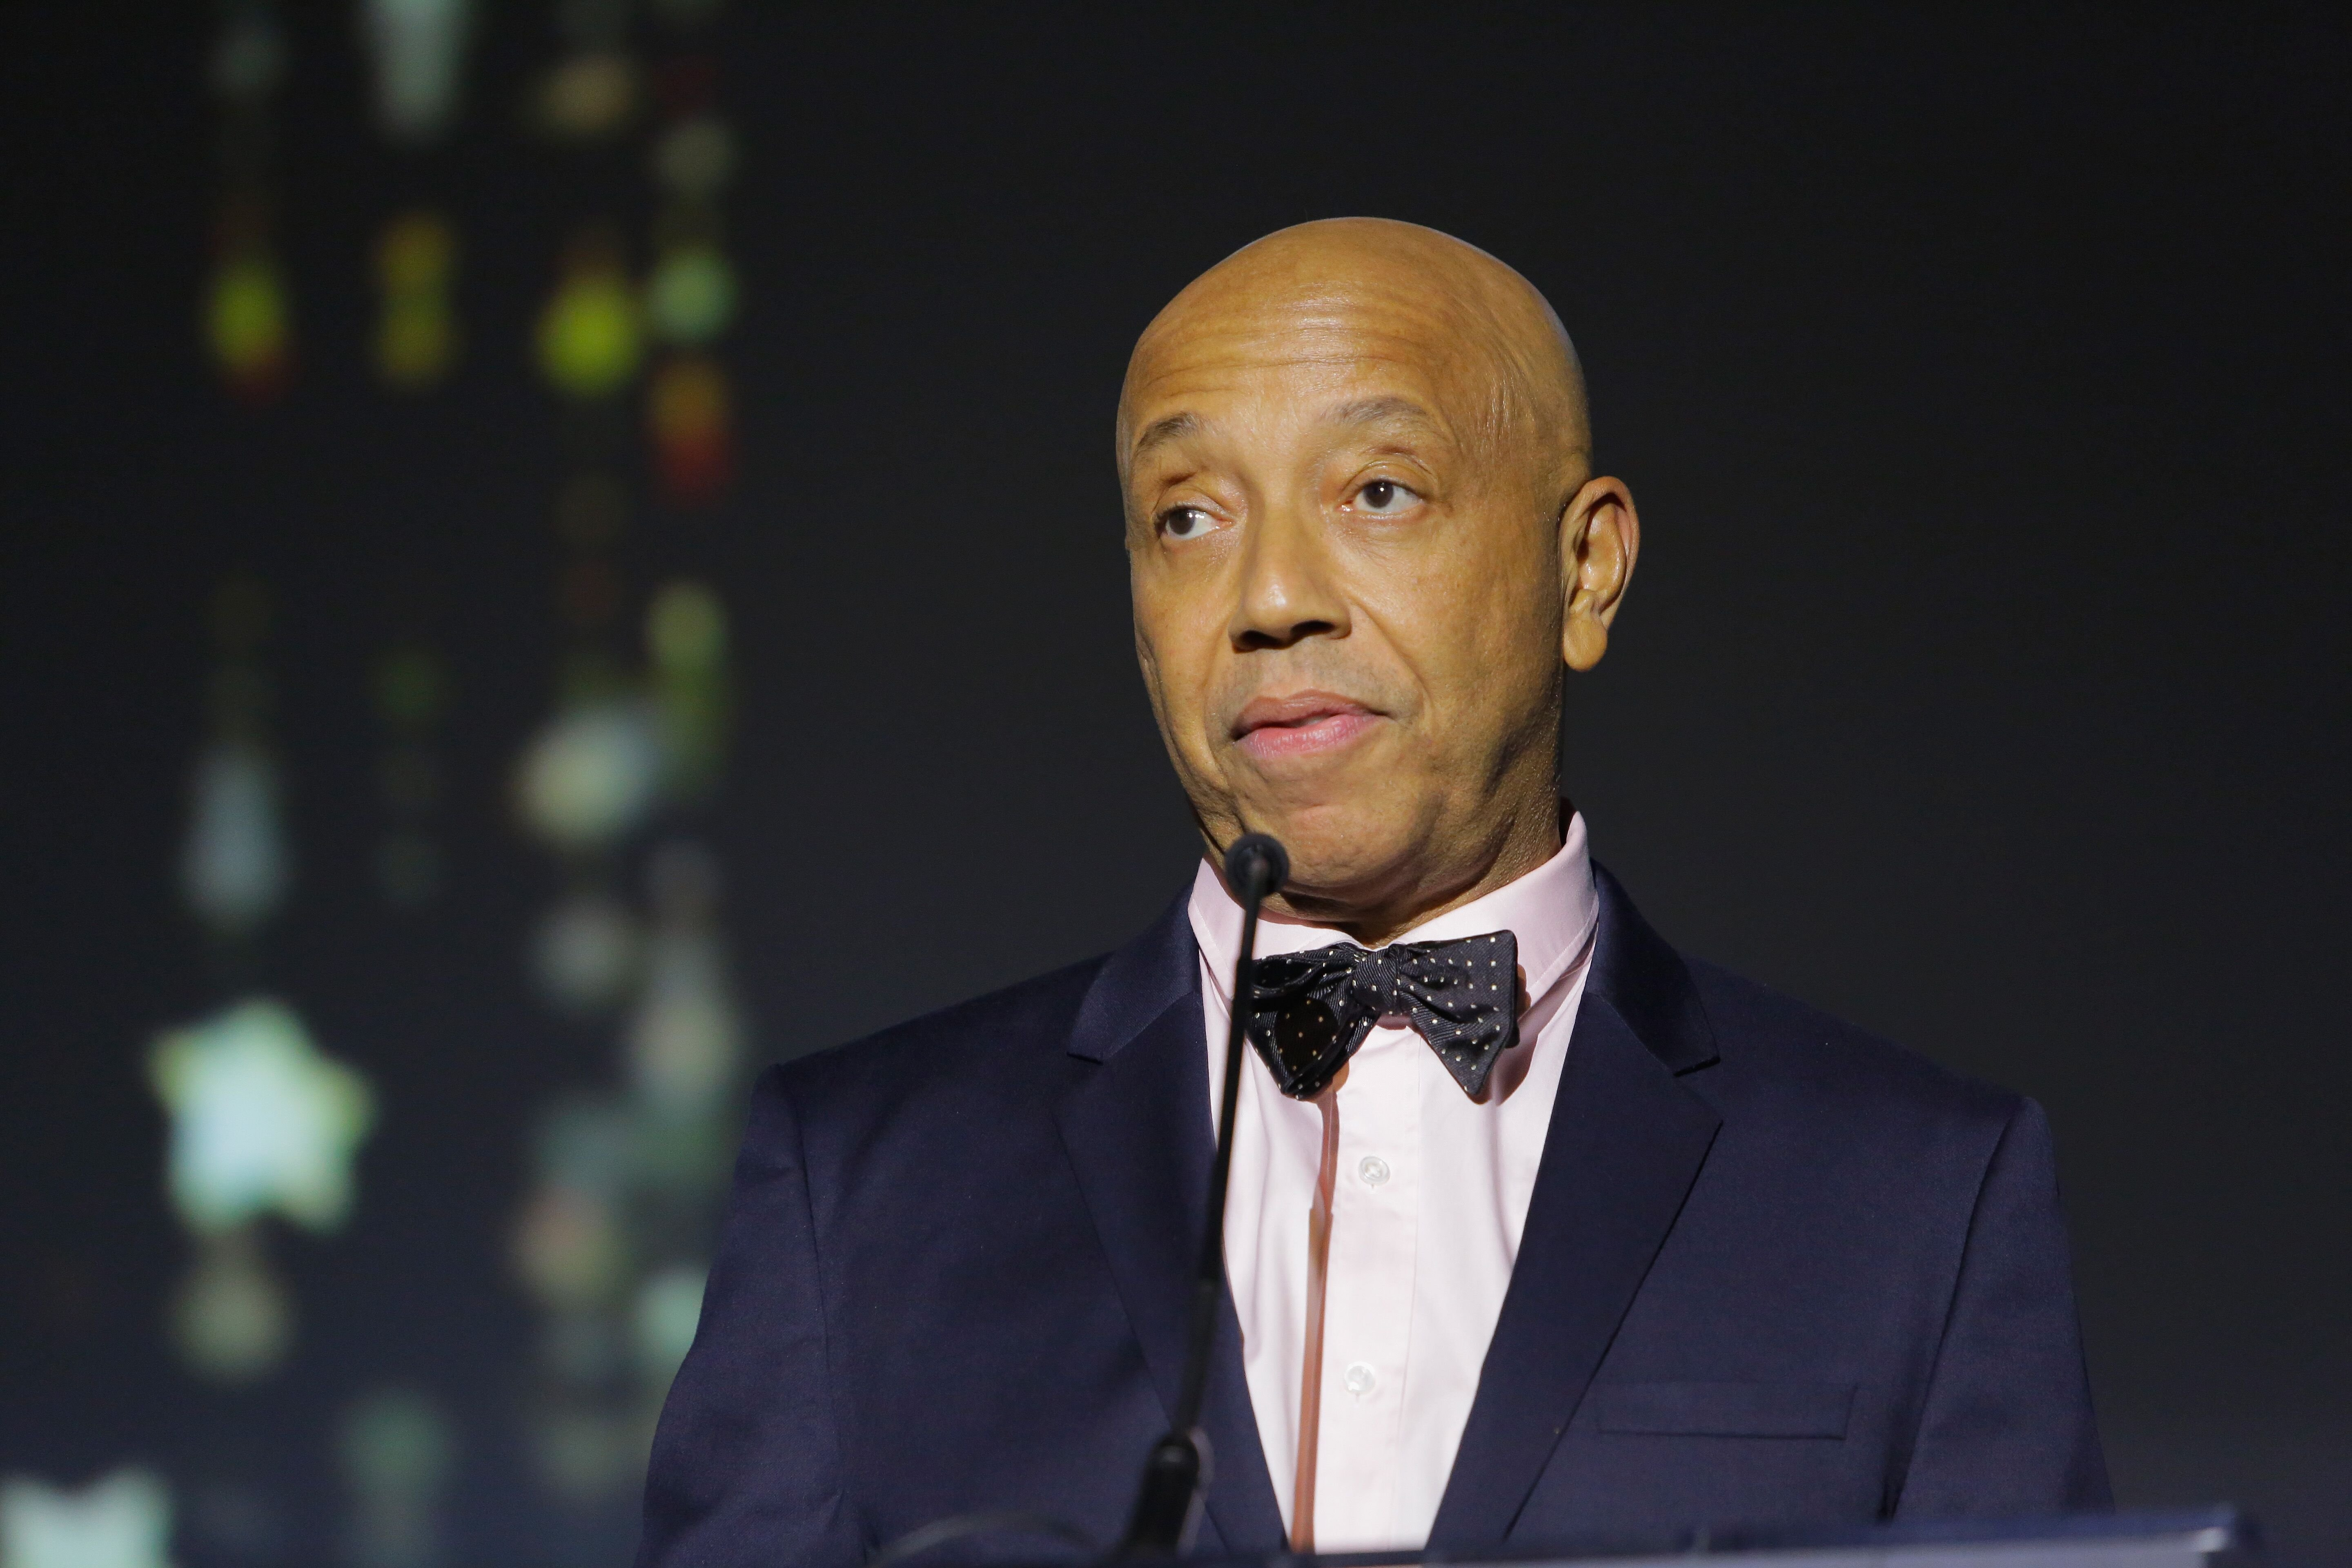 Music producer Russell Simmons speaks onstage at the 2017 Make a Wish Gala on November 9, 2017 | Photo: Getty Images